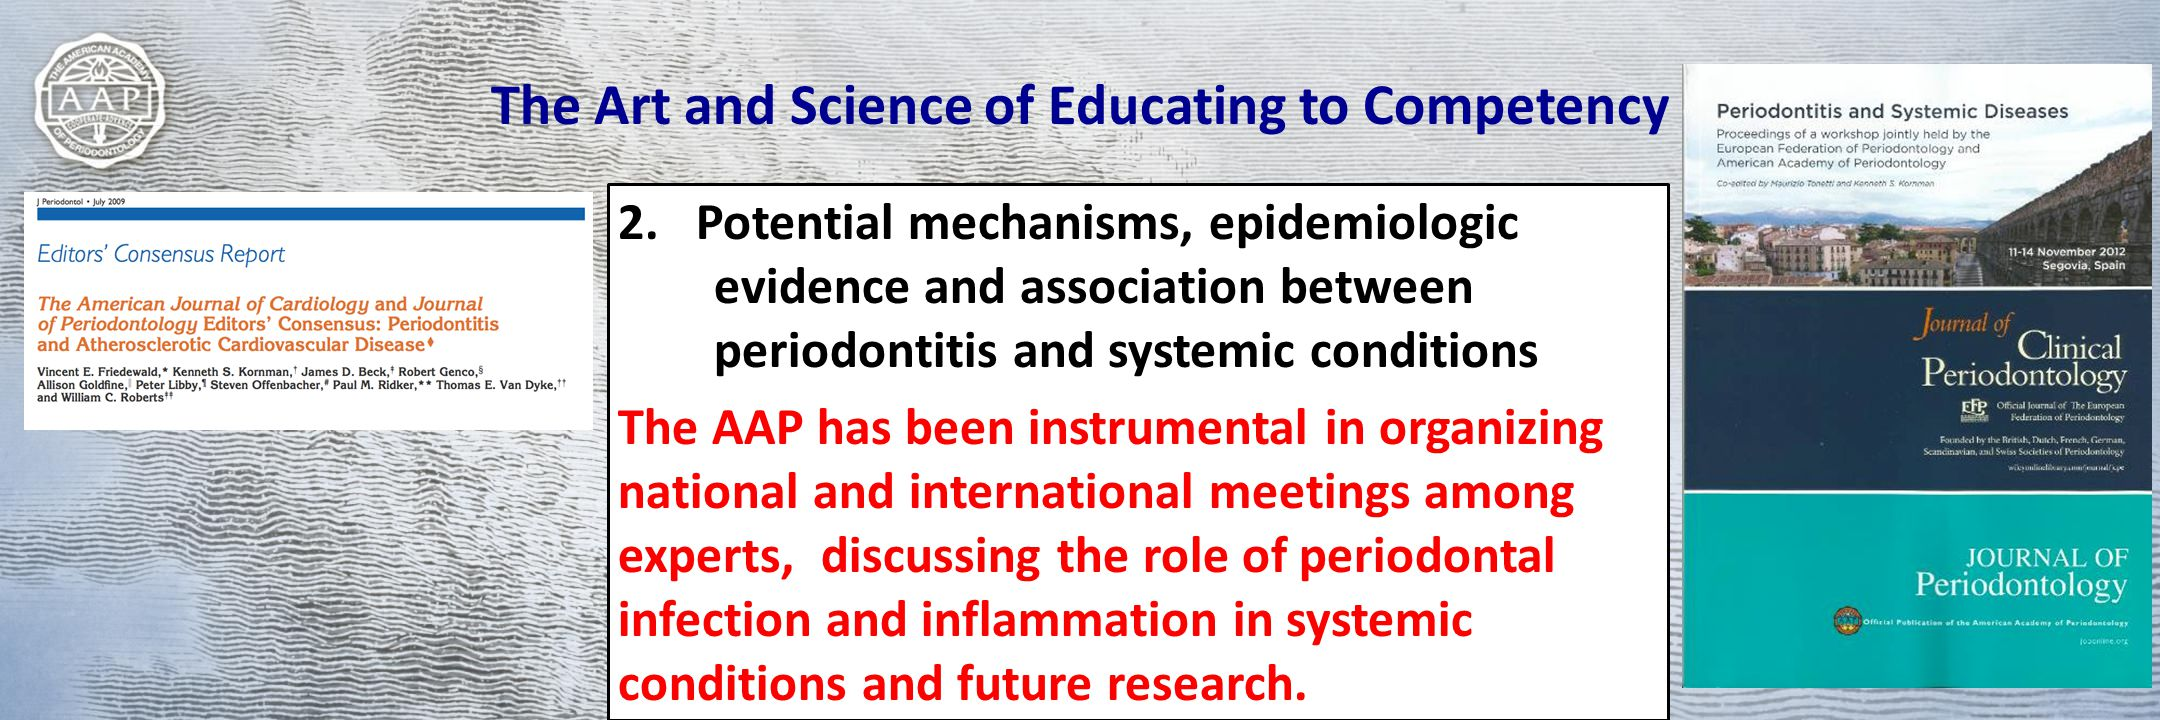 The Art and Science of Educating to Competency 2.Potential mechanisms, epidemiologic evidence and association between periodontitis and systemic conditions The AAP has been instrumental in organizing national and international meetings among experts, discussing the role of periodontal infection and inflammation in systemic conditions and future research.